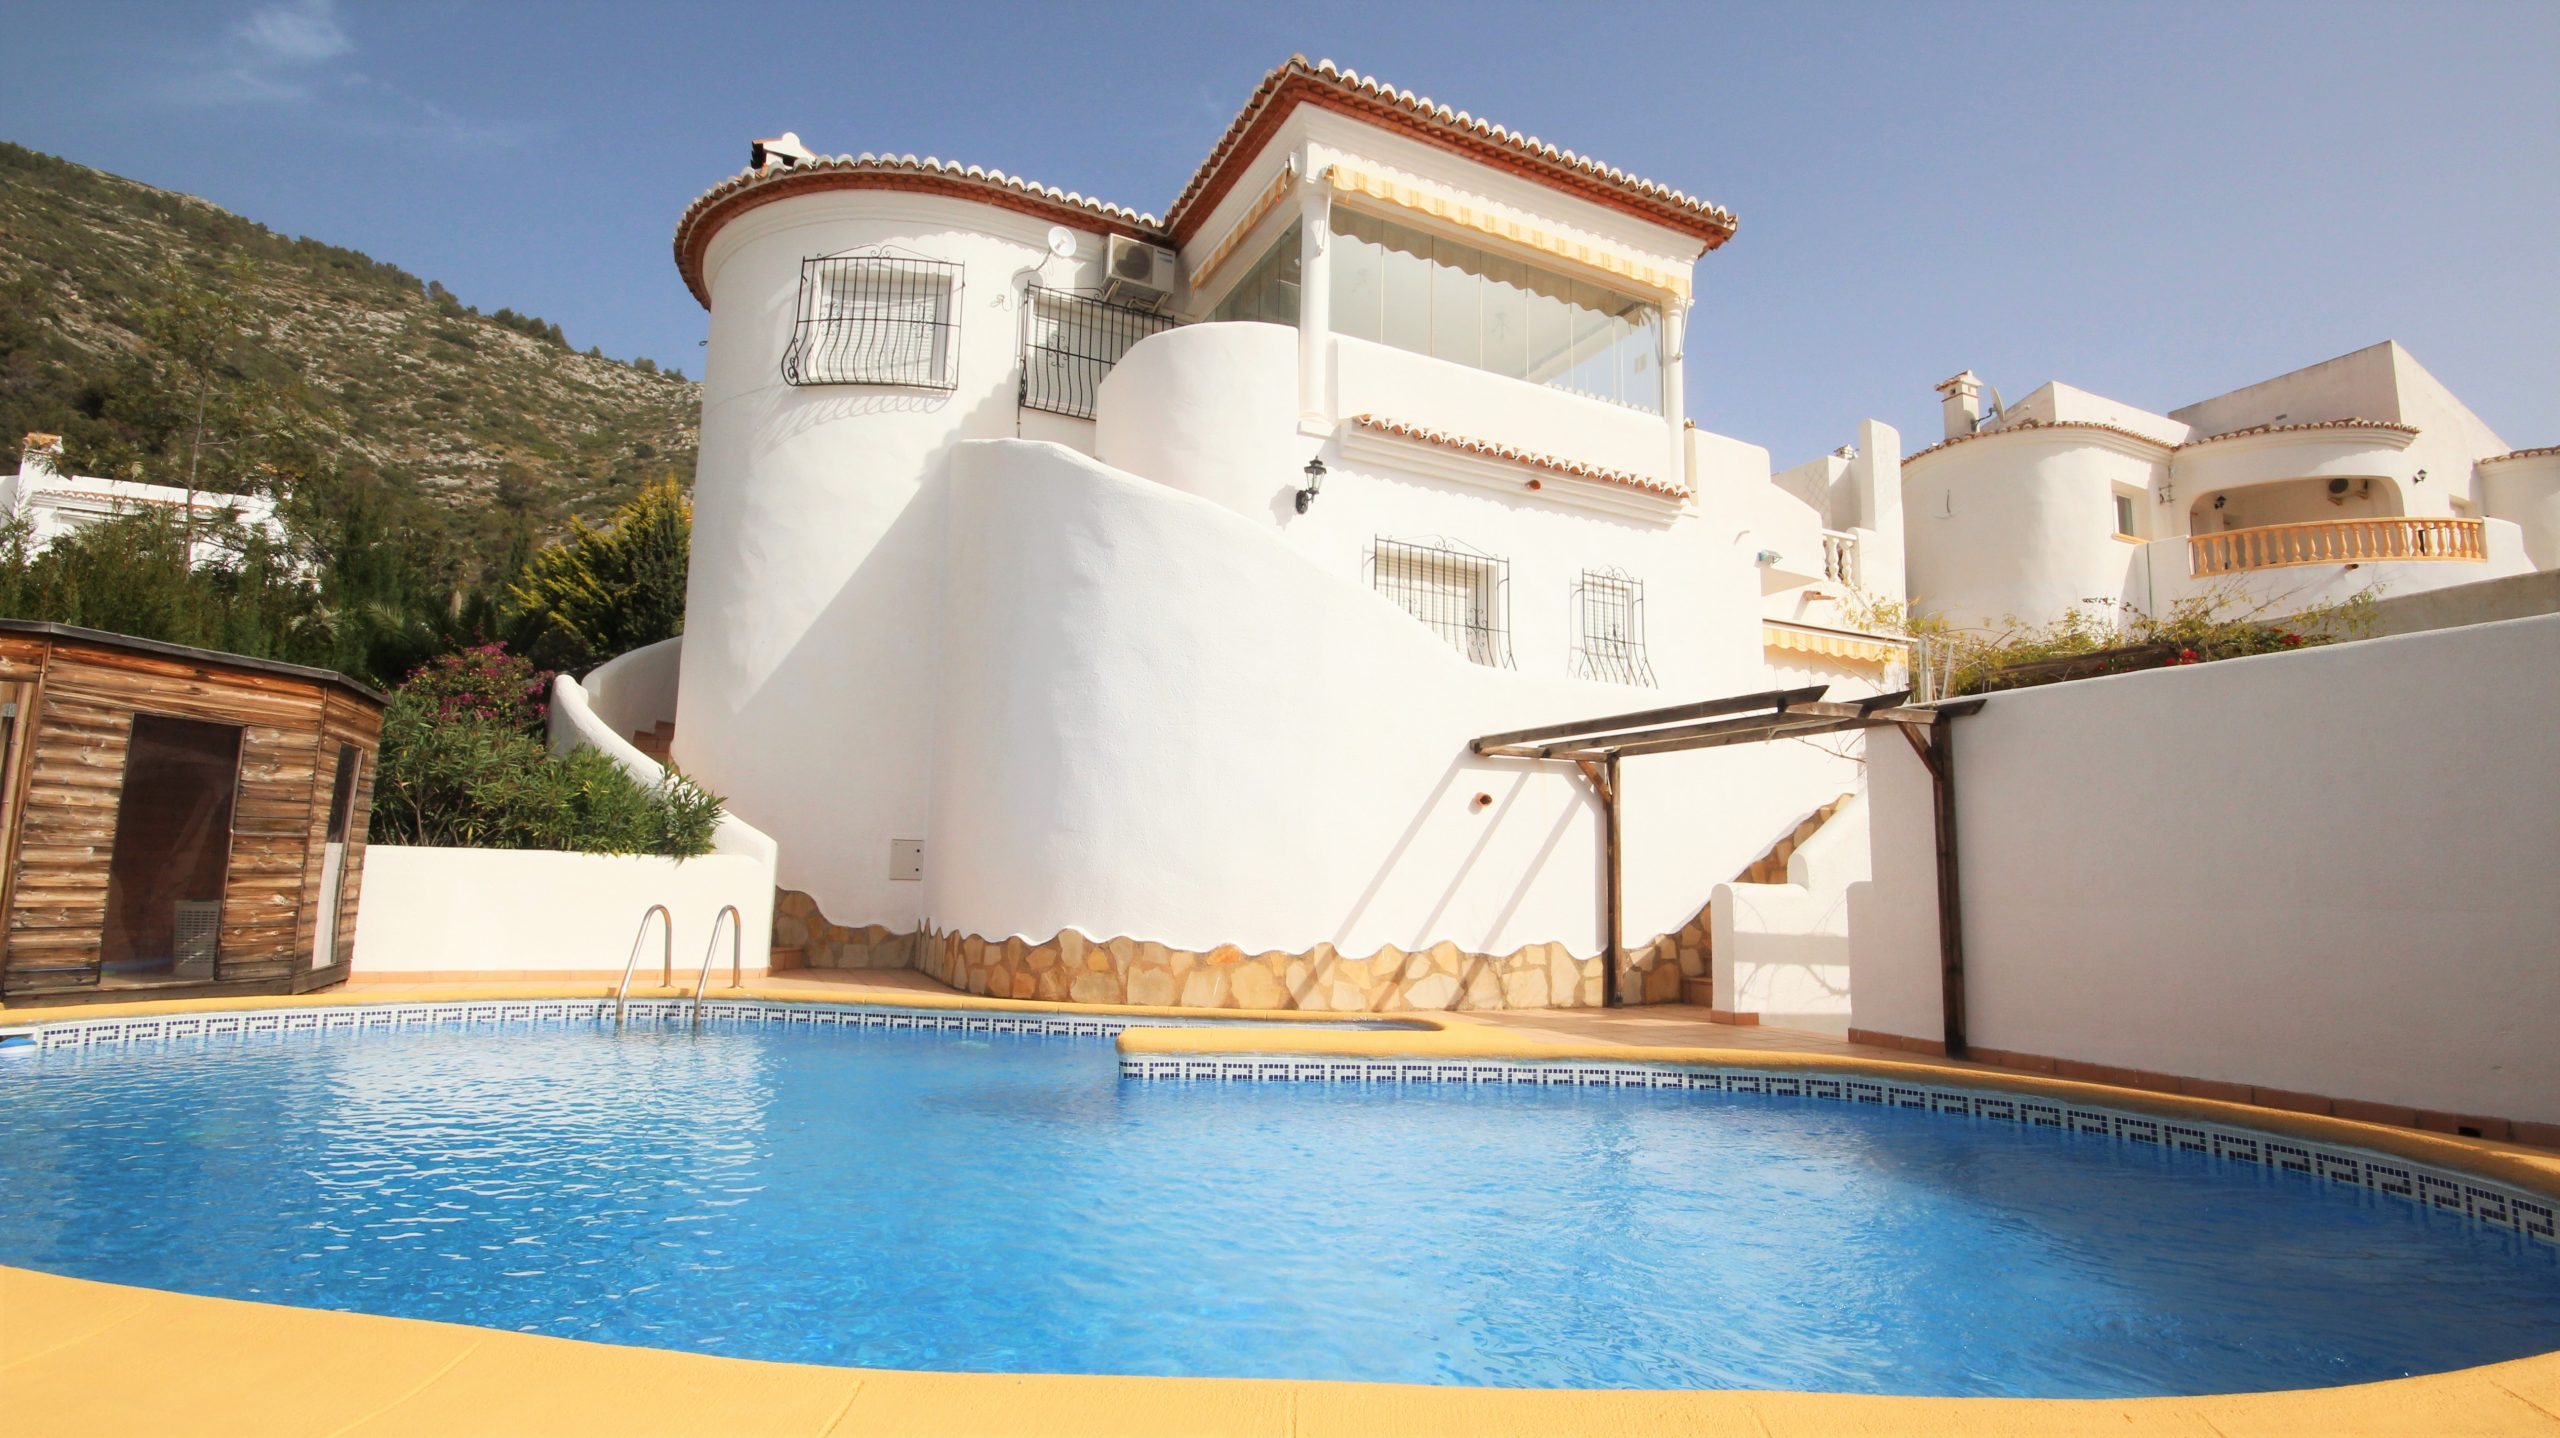 For sale: 4 bedroom house / villa in Jalon / Xaló, Costa Blanca